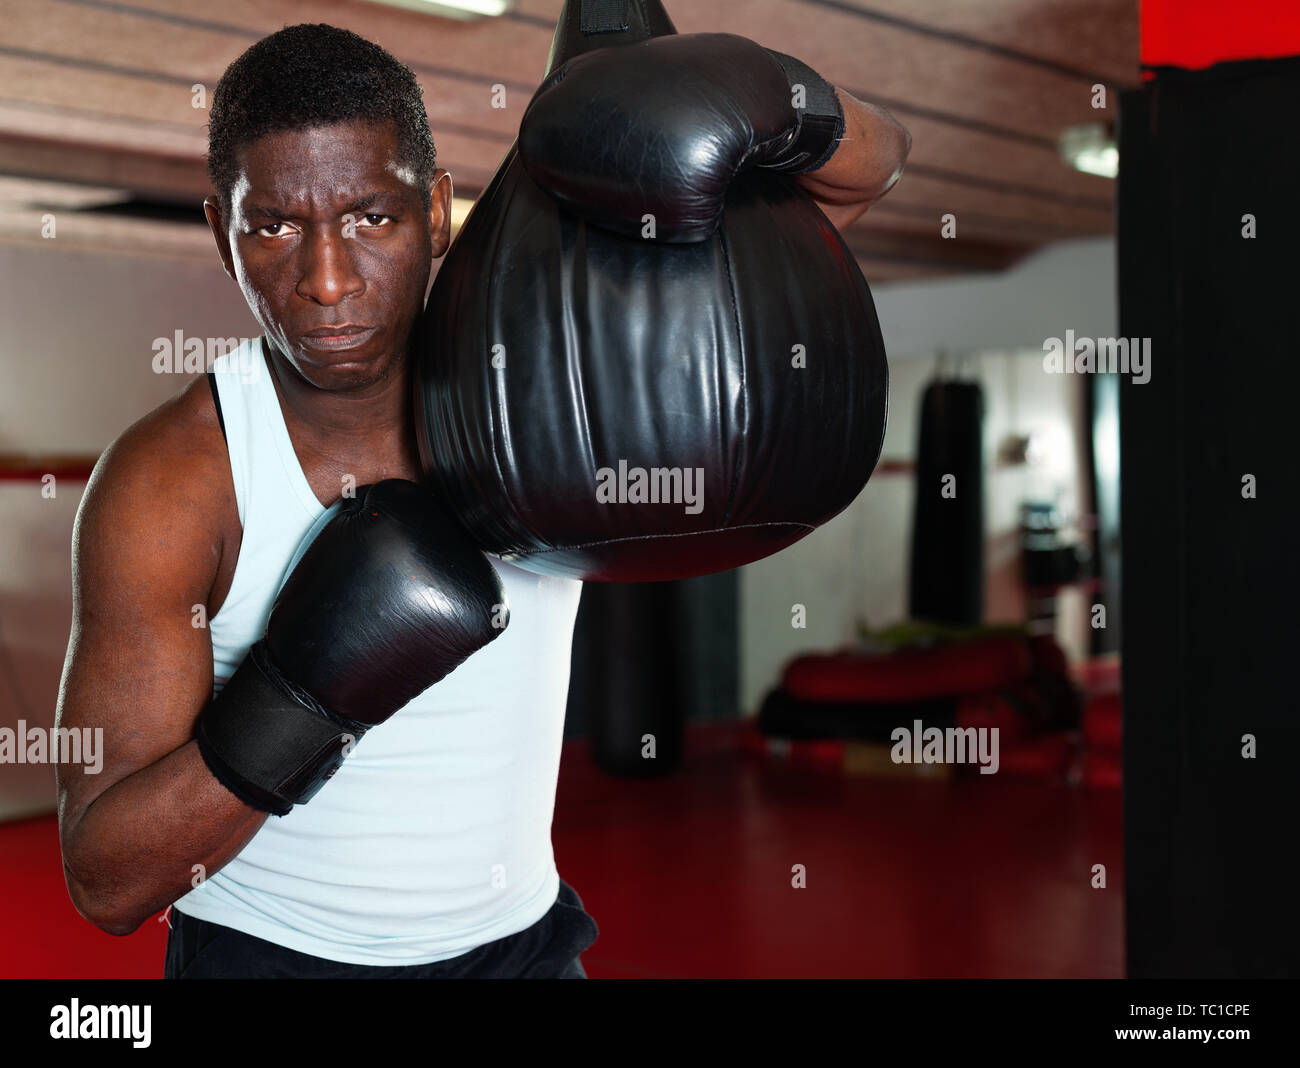 Potrait of glad cheerful positive african american boxer who is training in gym - Stock Image